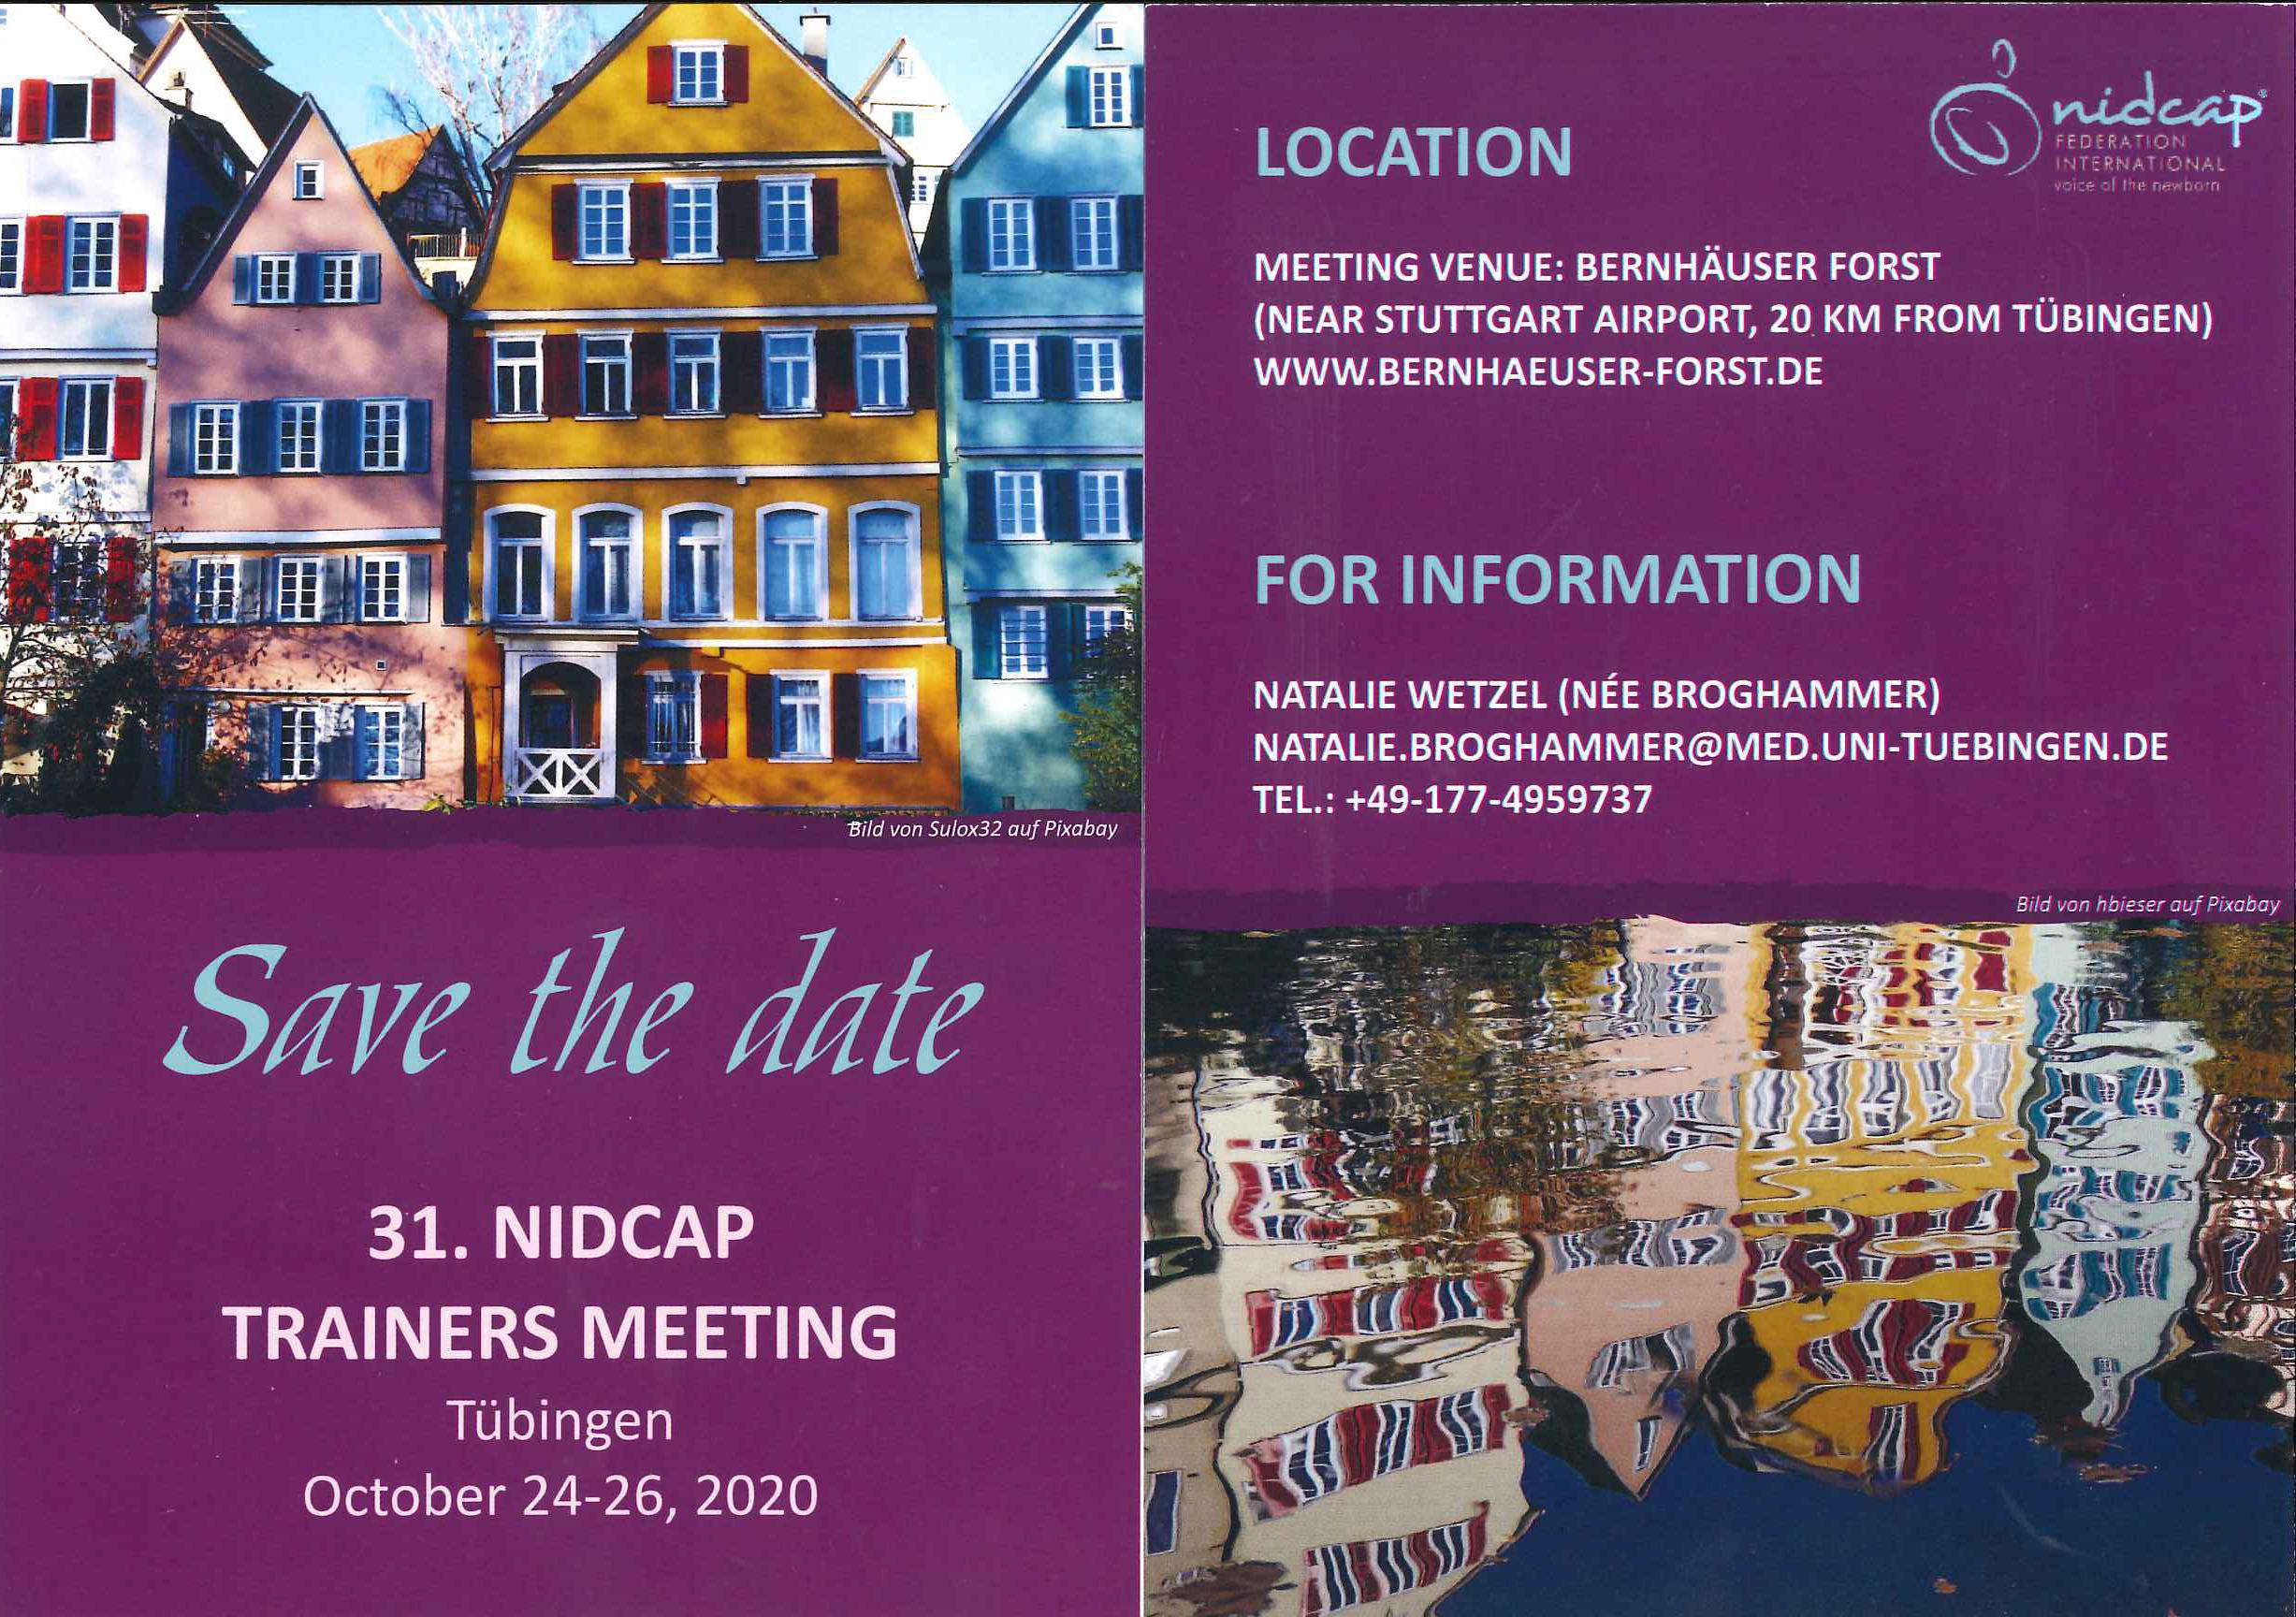 Save the Date Card NTM 2020